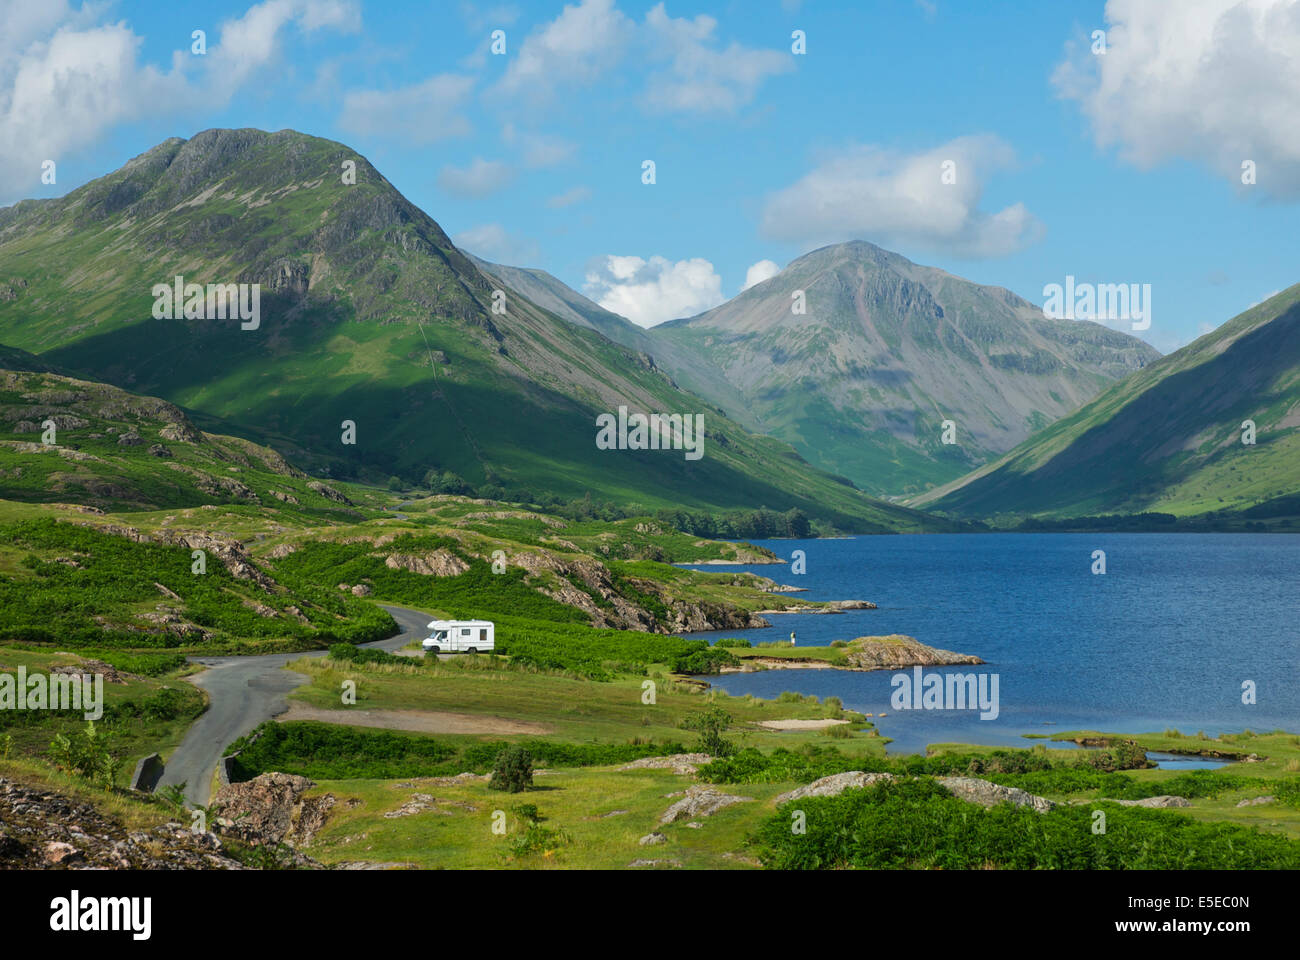 Motorhome parked next to Wastwater, Wasdale, Lake District National Park, Cumbria, England UK - Stock Image